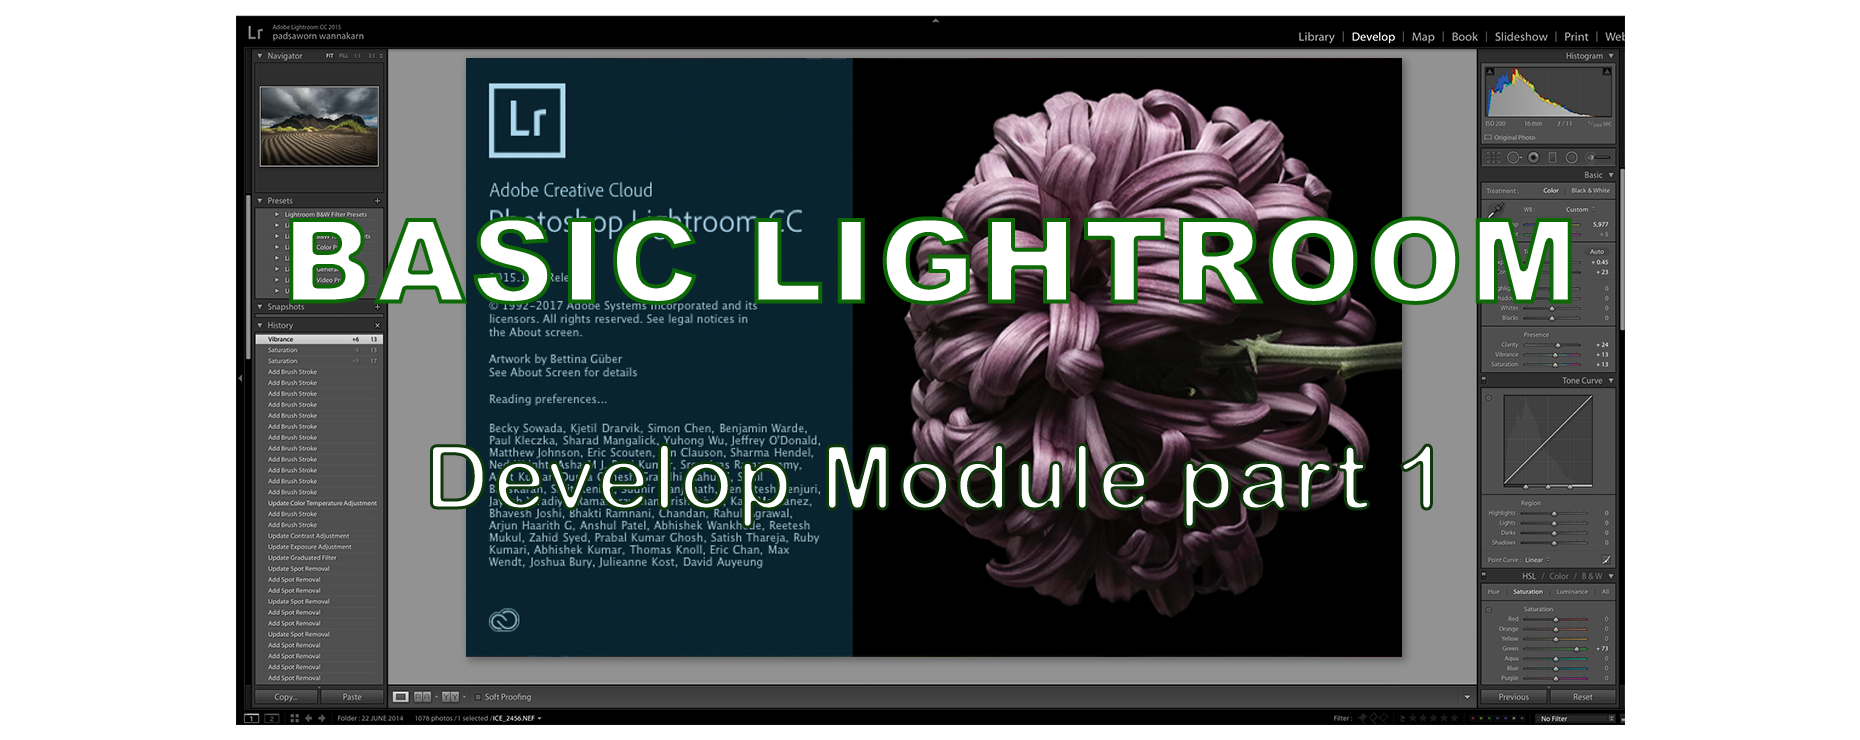 Basic Lightroom : Develop Module part 1